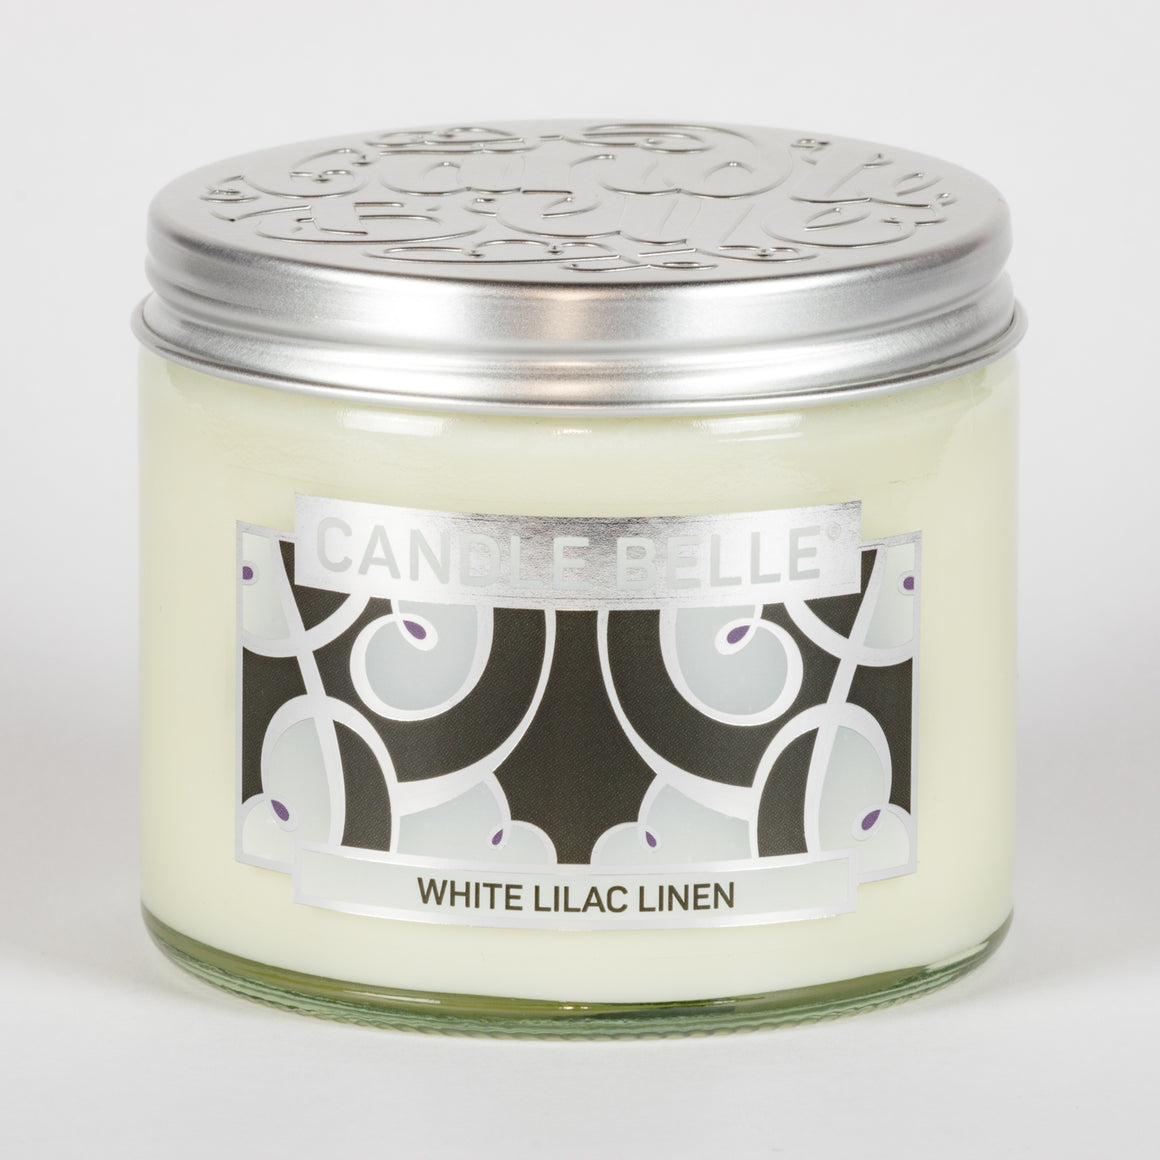 Candle Belle® DECO White Lilac Linen Fragranced Twin Wick Jar Candle 240g (3 Pack)